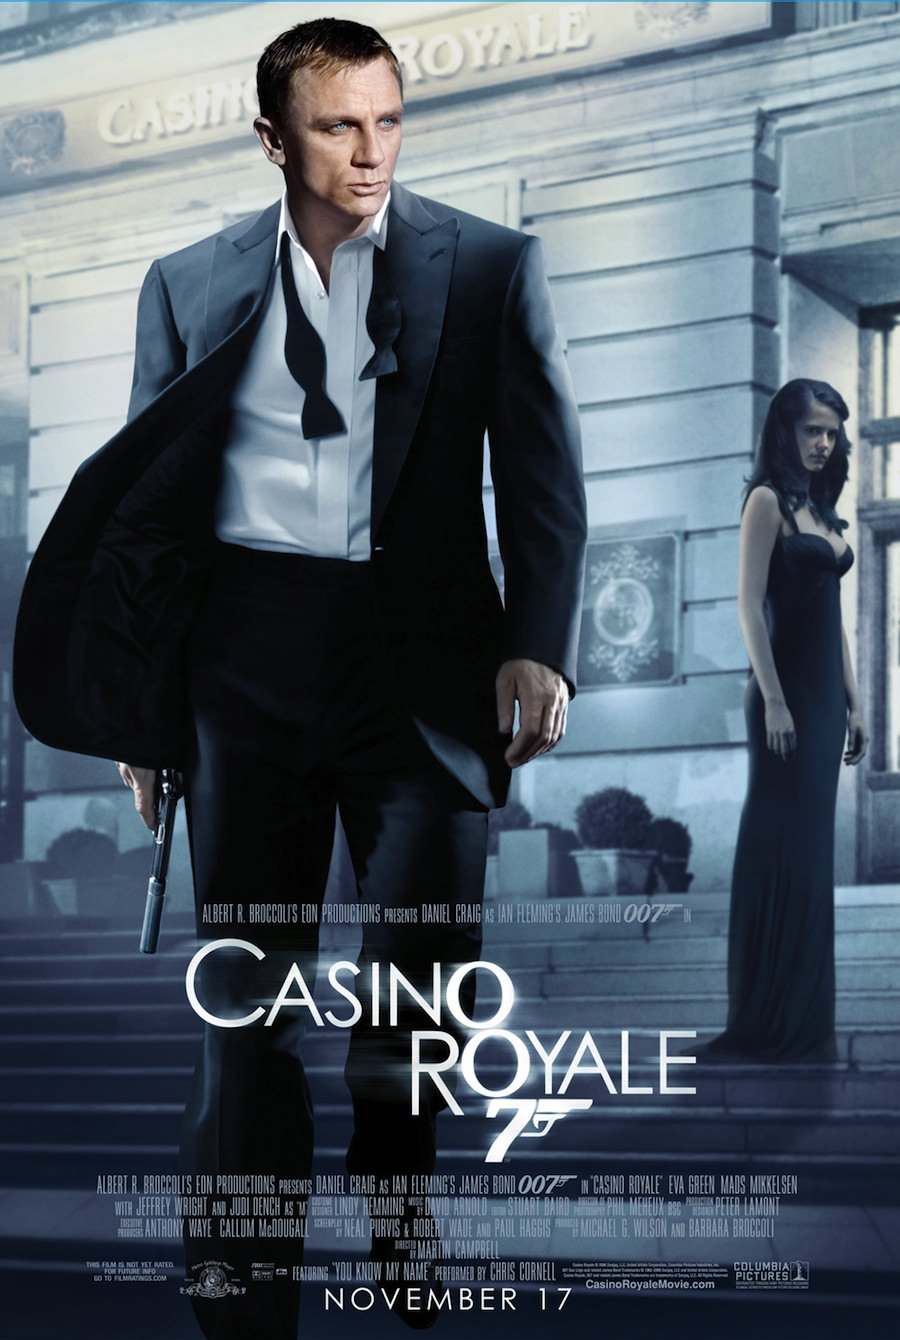 James bond casino royale martin campbell